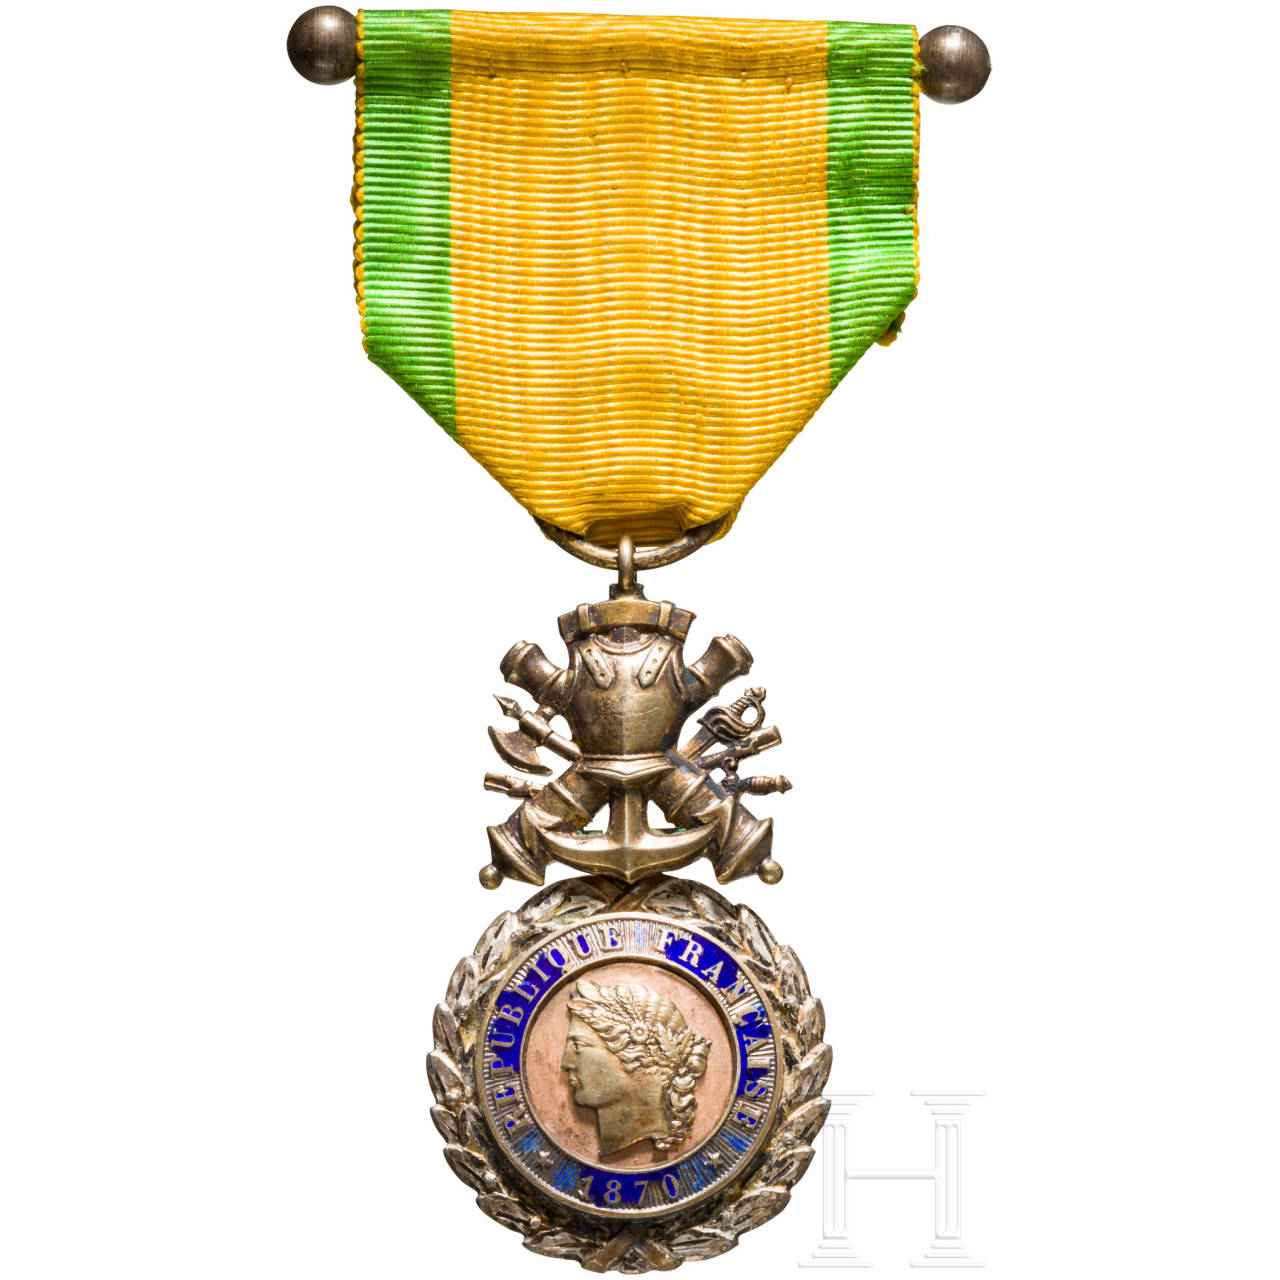 Military medal, France, late 19th century